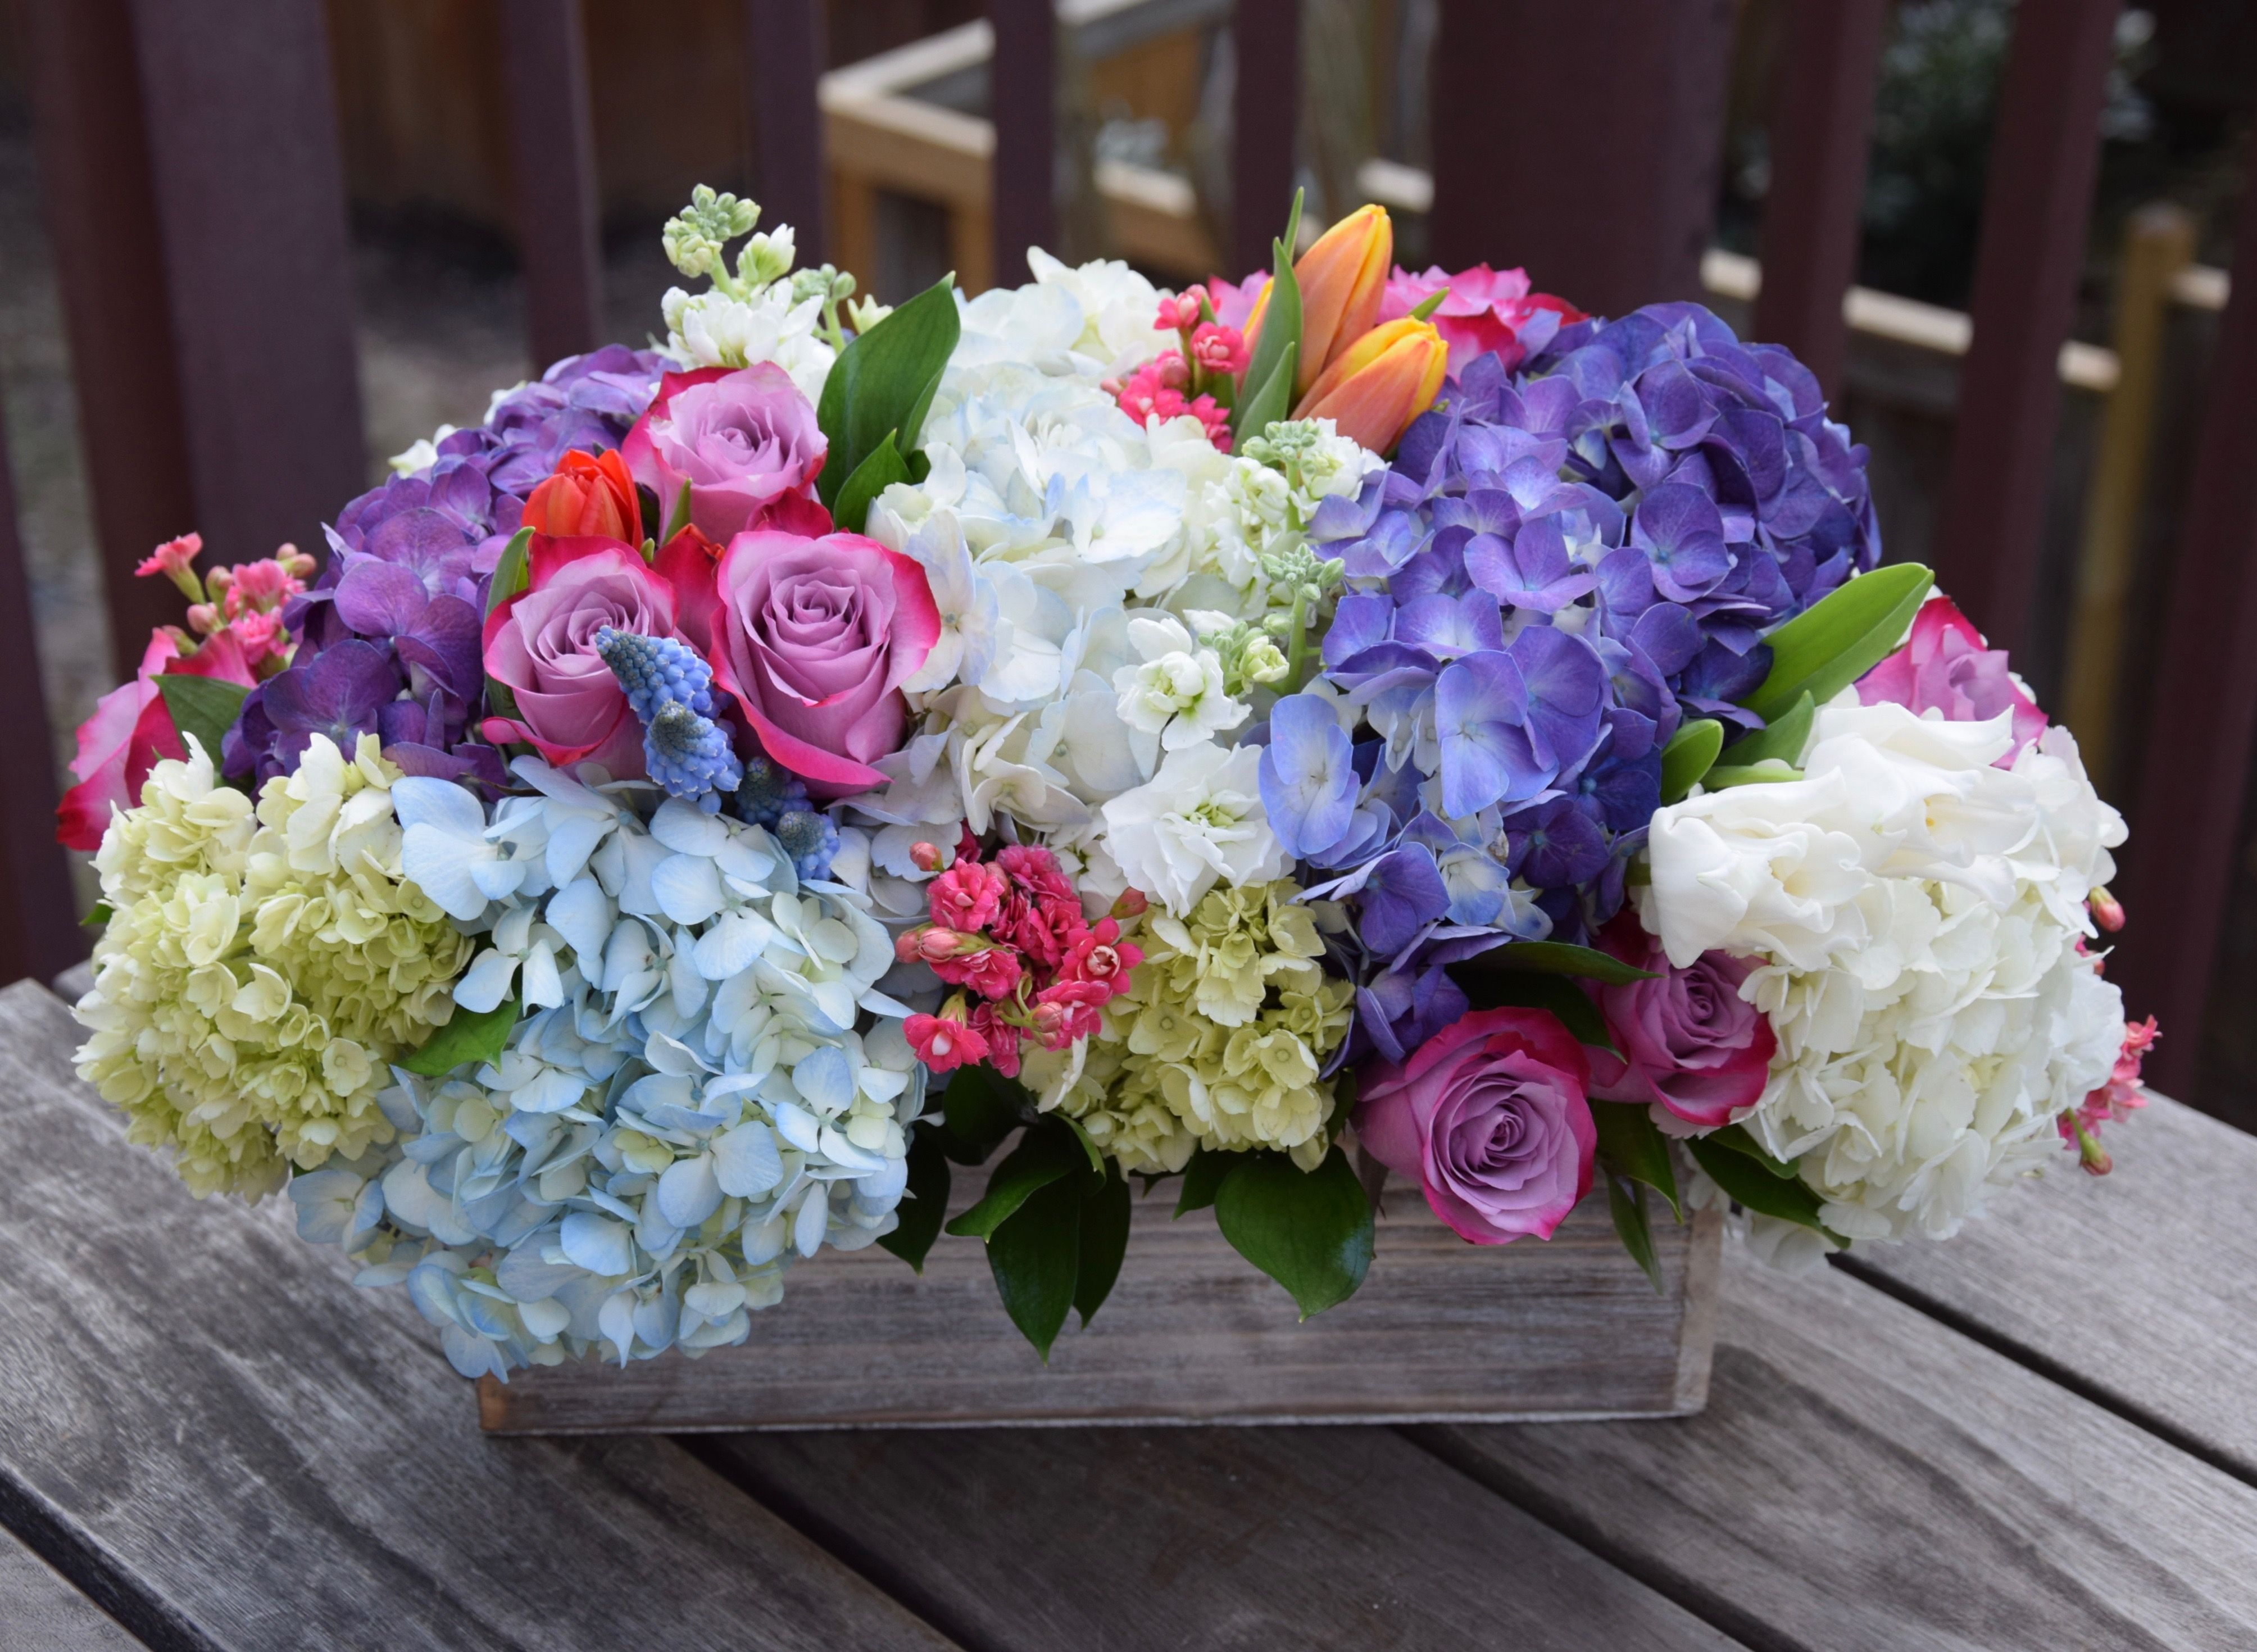 Floral Gift Box Packed With Fresh Flowers Hydrangeas Roses Tulips Flower Arrangements Simple Fresh Flowers Arrangements Flower Arrangements